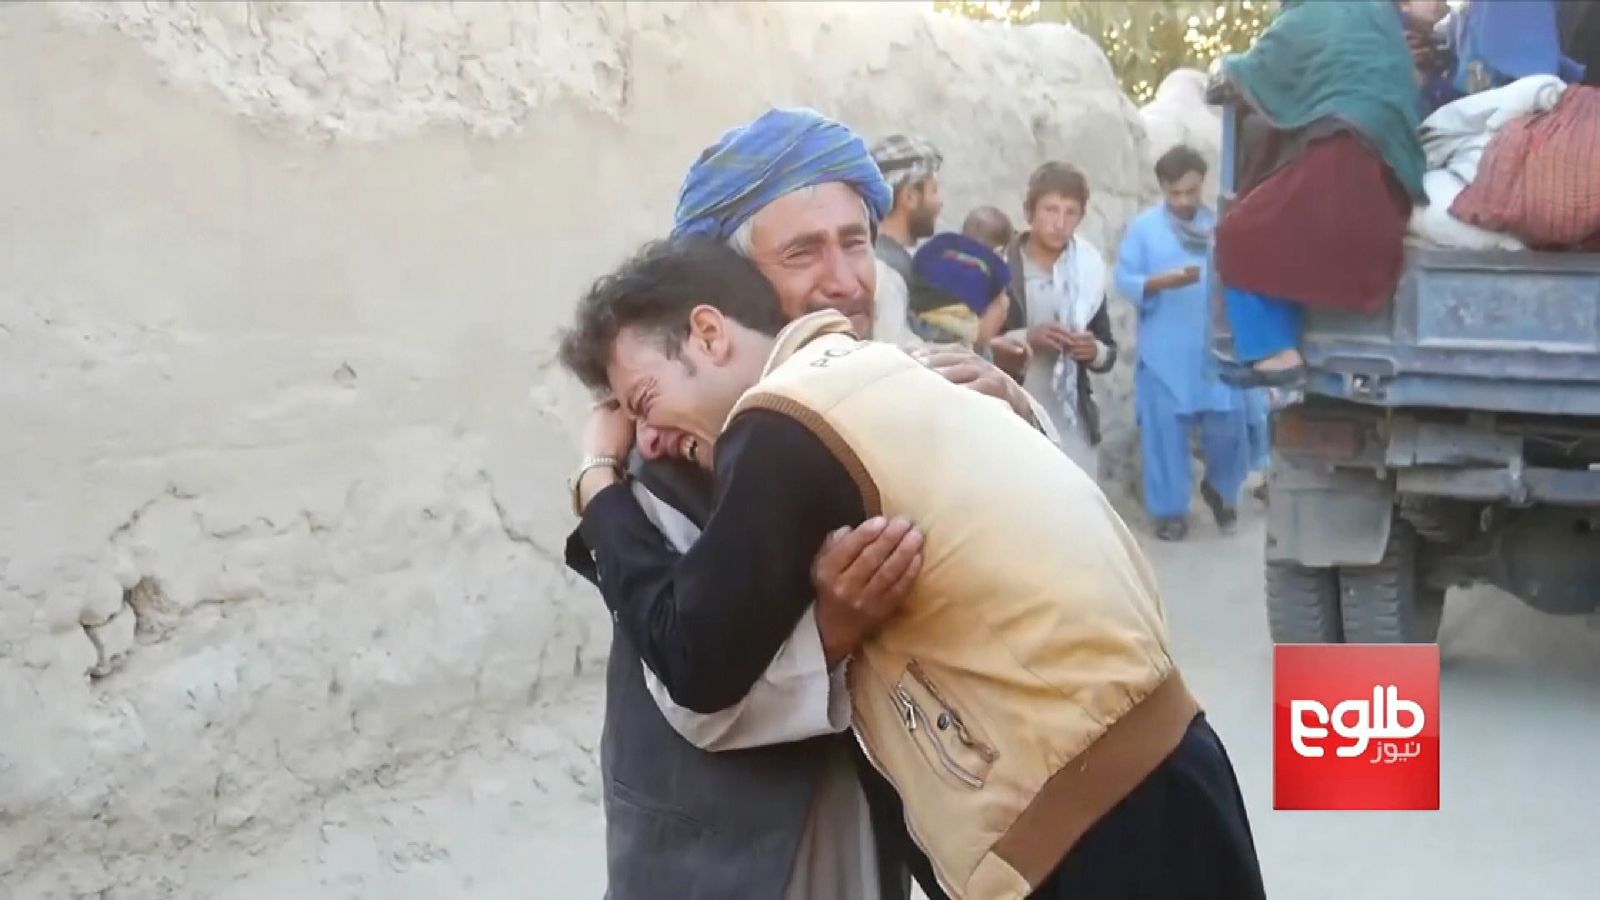 The Taliban and IS release some captives in Afghanistan